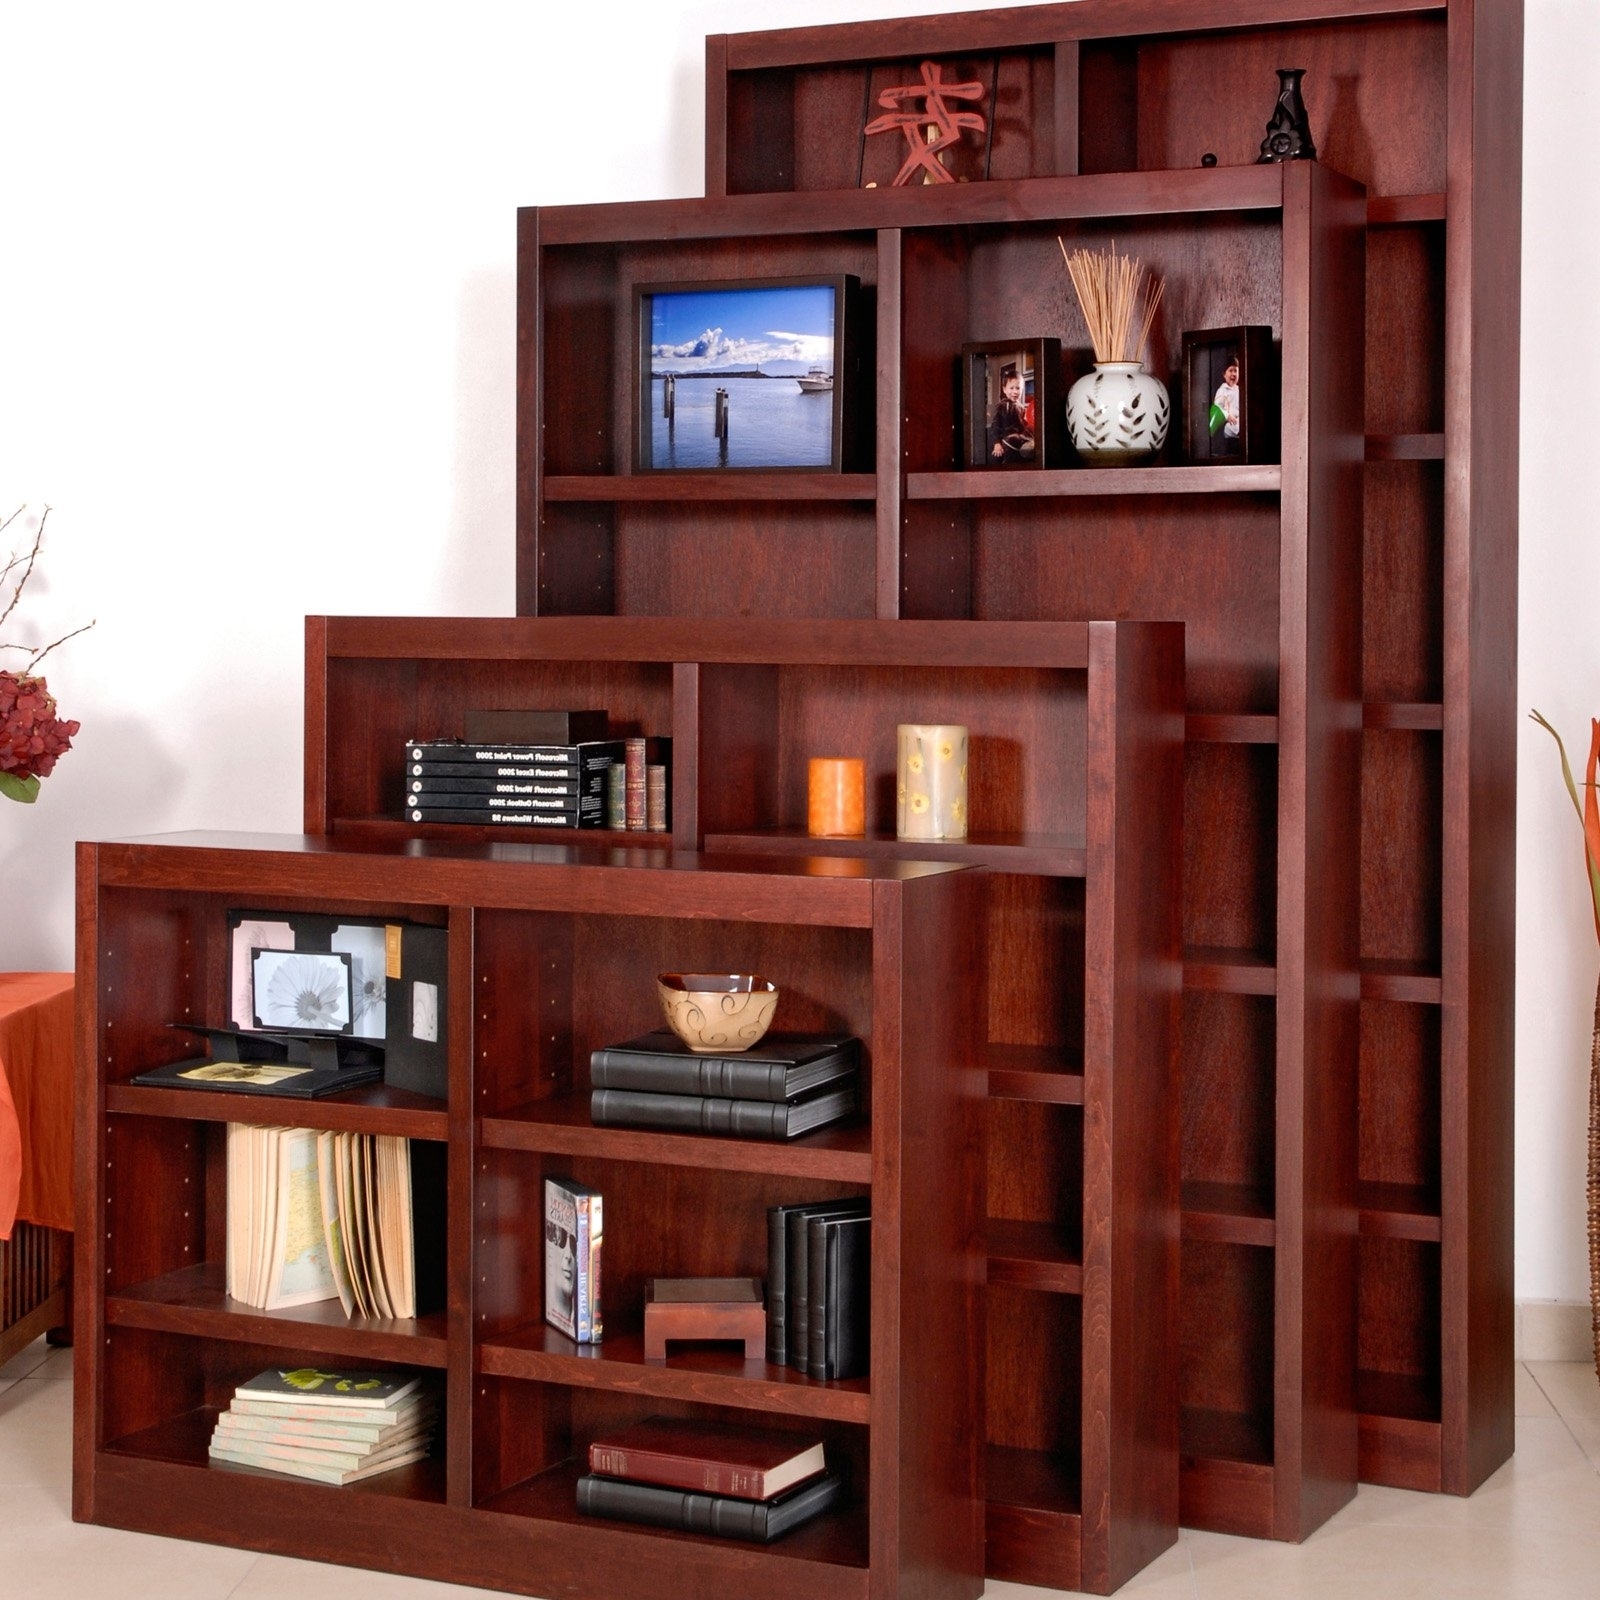 Widely Used 40 Inch Wide Bookcases For 7413de916433 1 Inch Wide Ladder Shelf Bookcase White Wood (View 7 of 15)